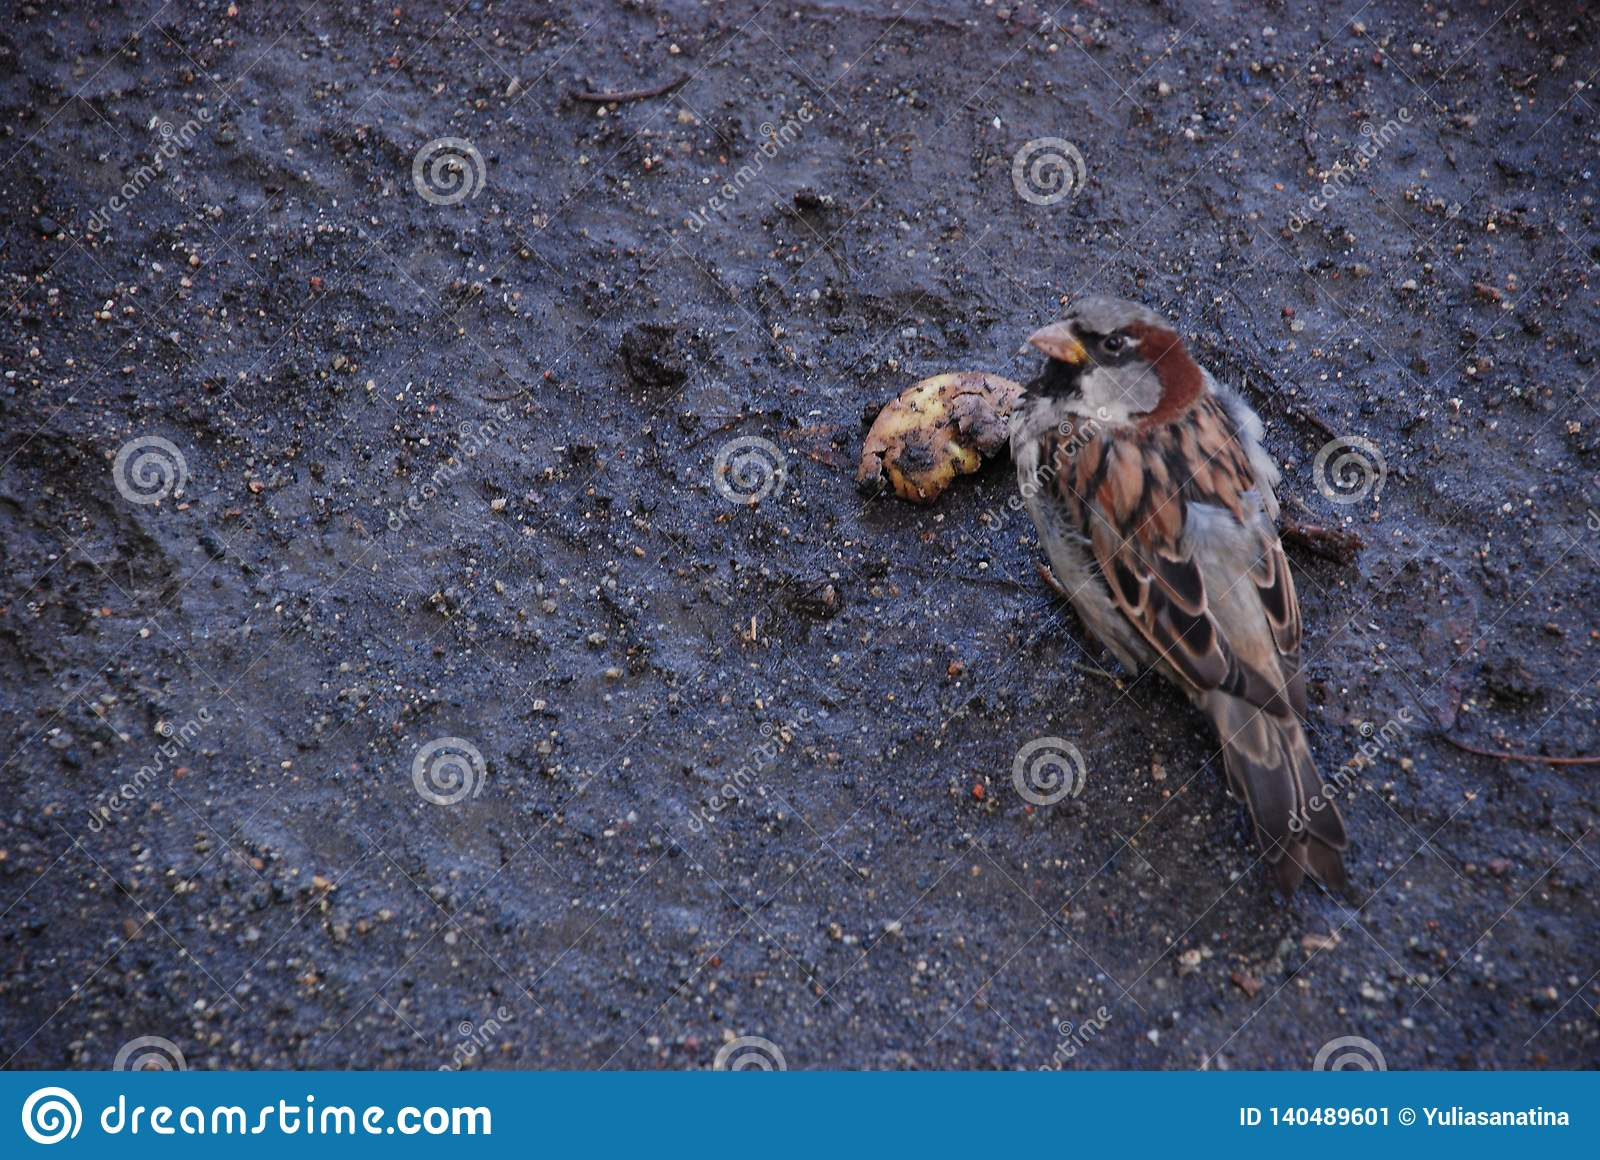 The sparrow on the wet ground eats rotten fruit in the autumn surrounded by seeds